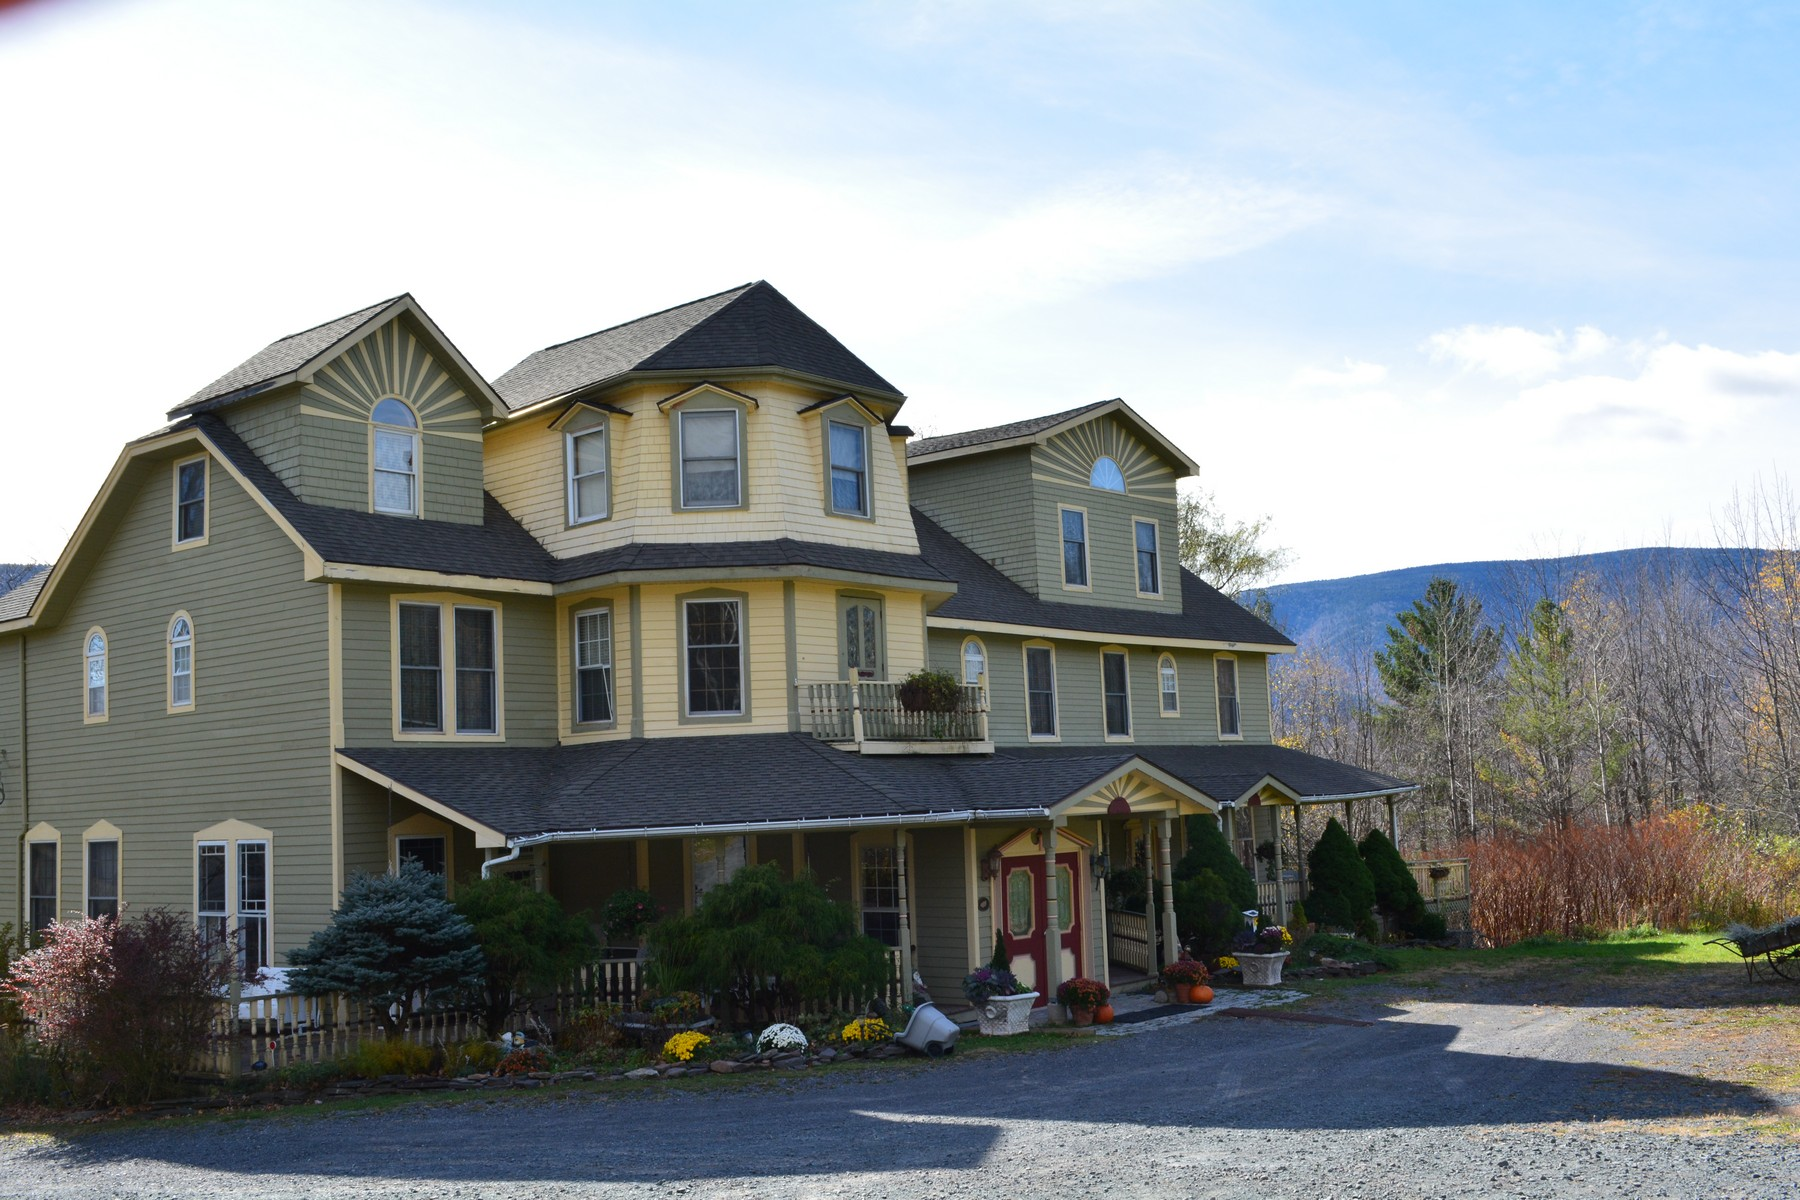 Commercial for Sale at Washington Irving Inn 6629 23a Tannersville, New York 12442 United States